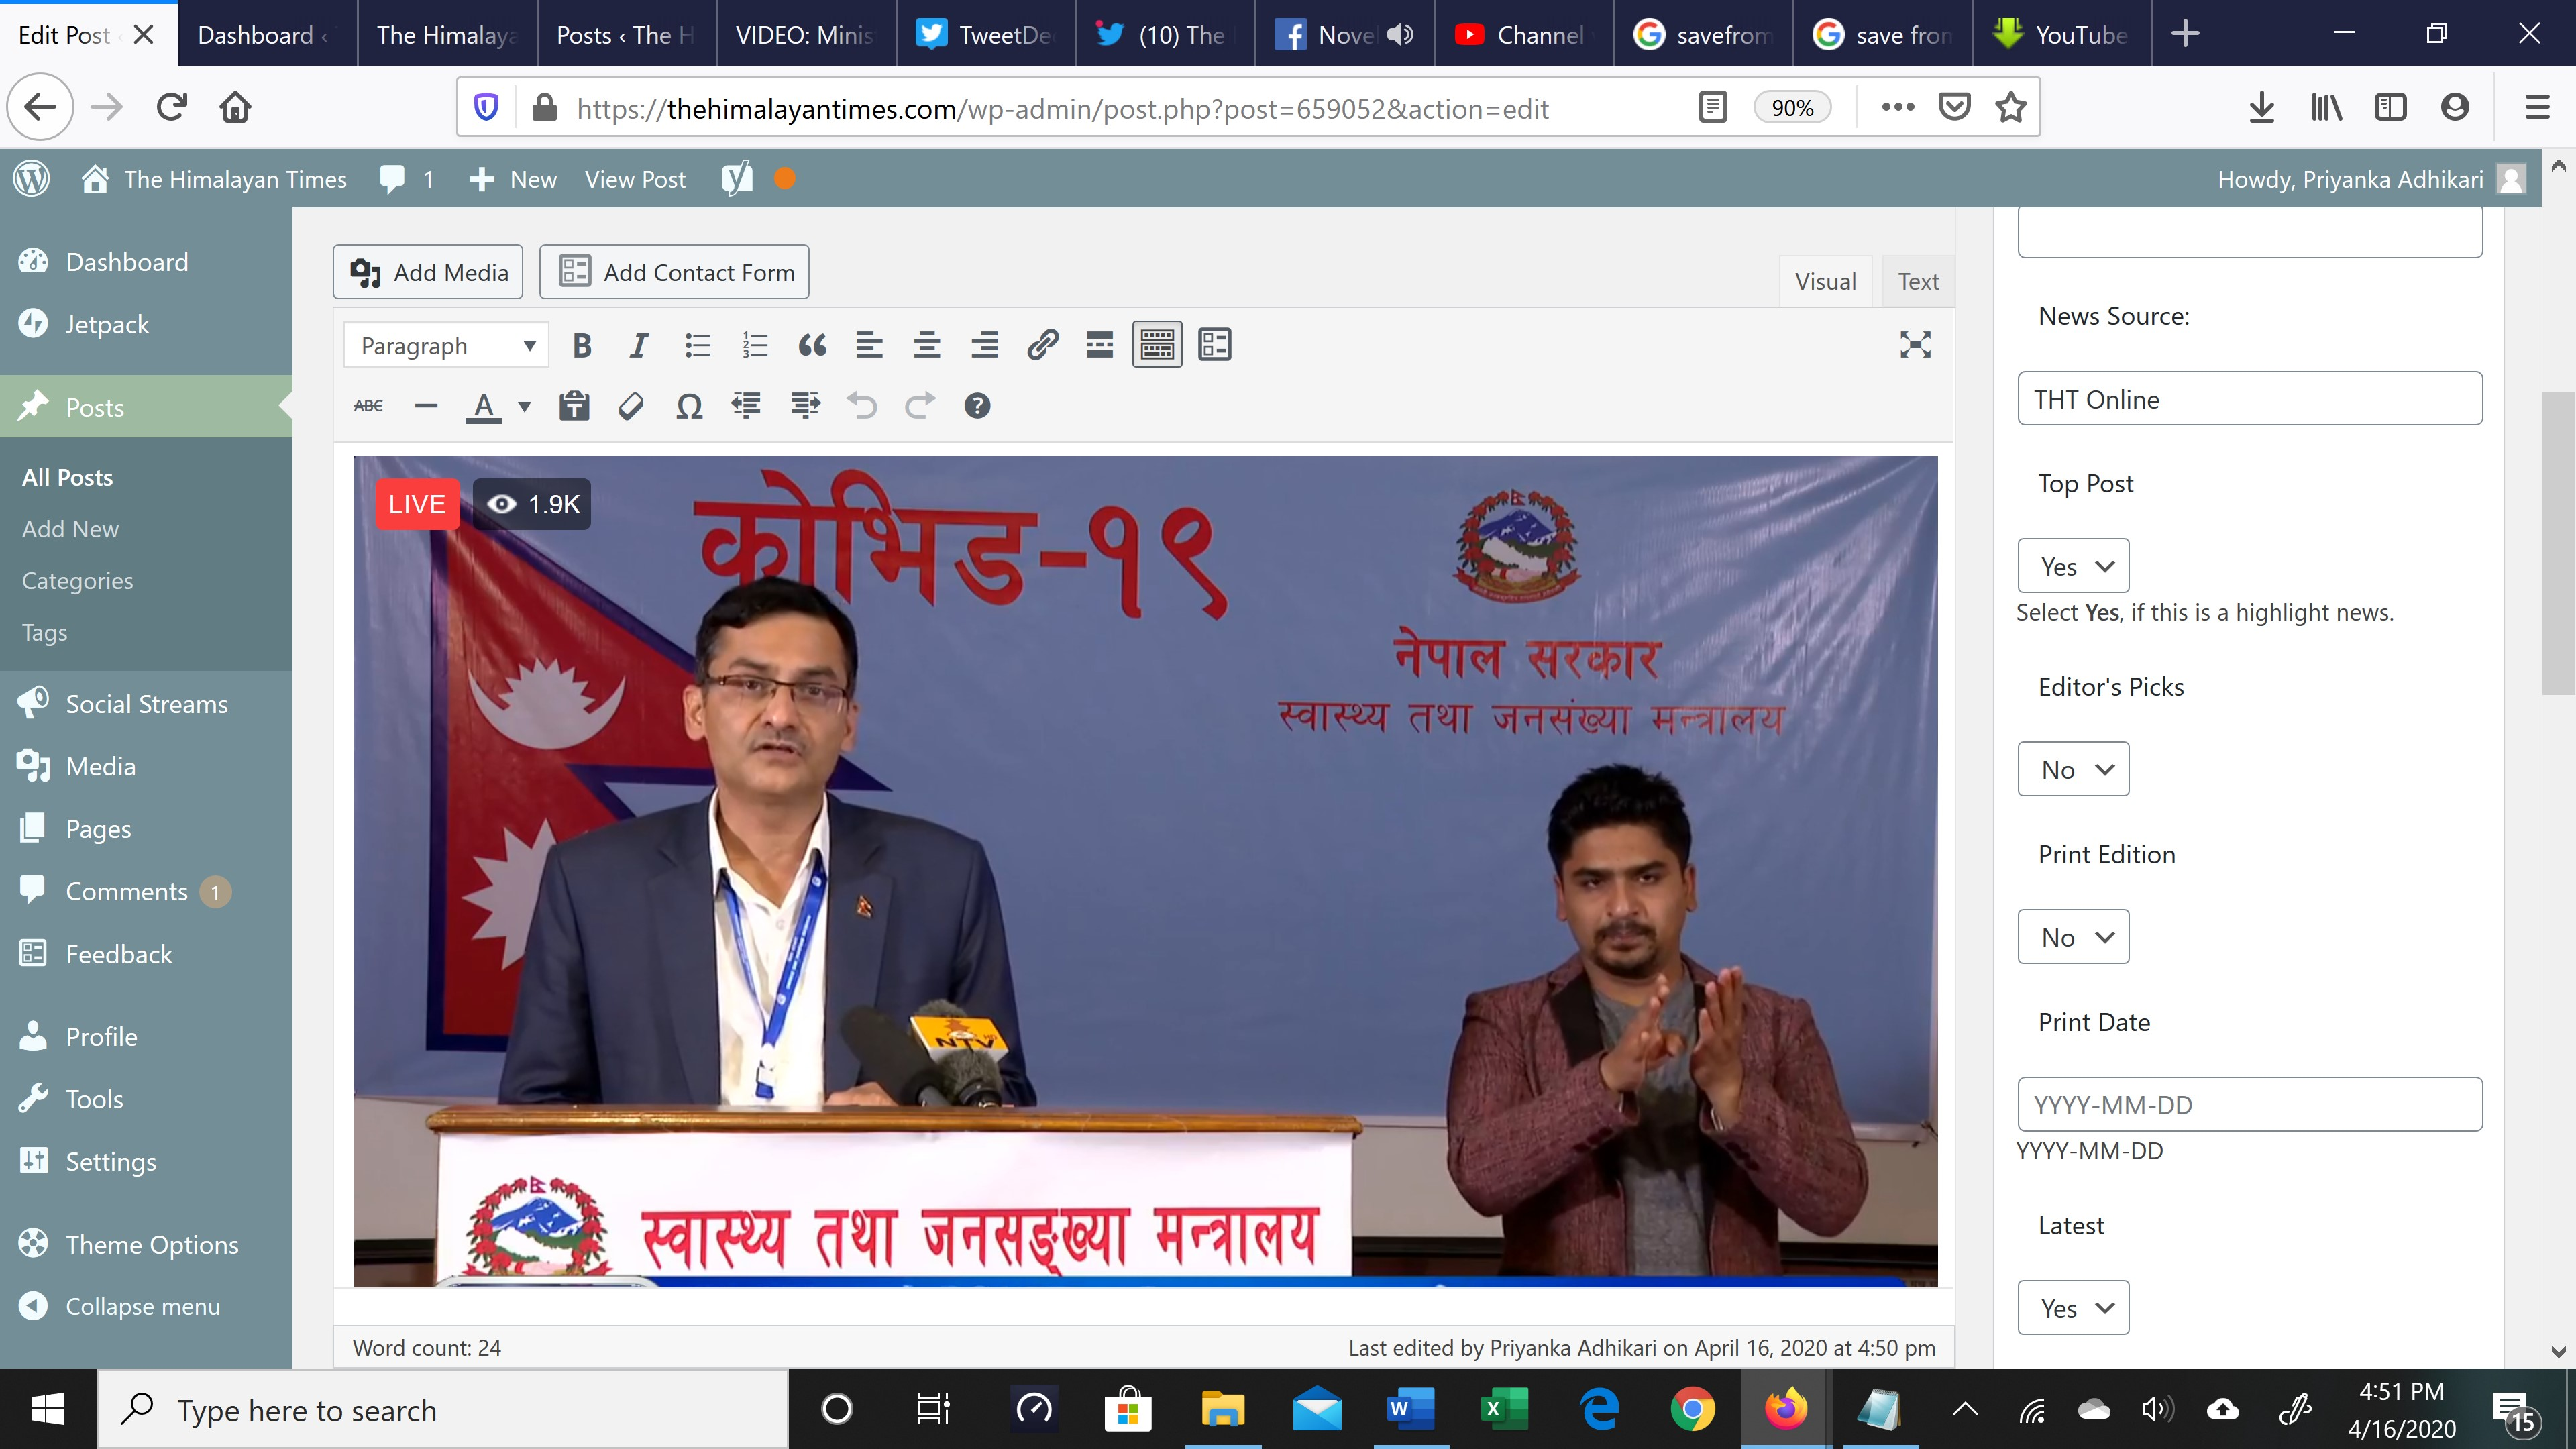 A screenshot of media briefing conducted by Ministry of Health Spokesperson Dr Bikash Devkota, on Thursday, April 16, 2020.